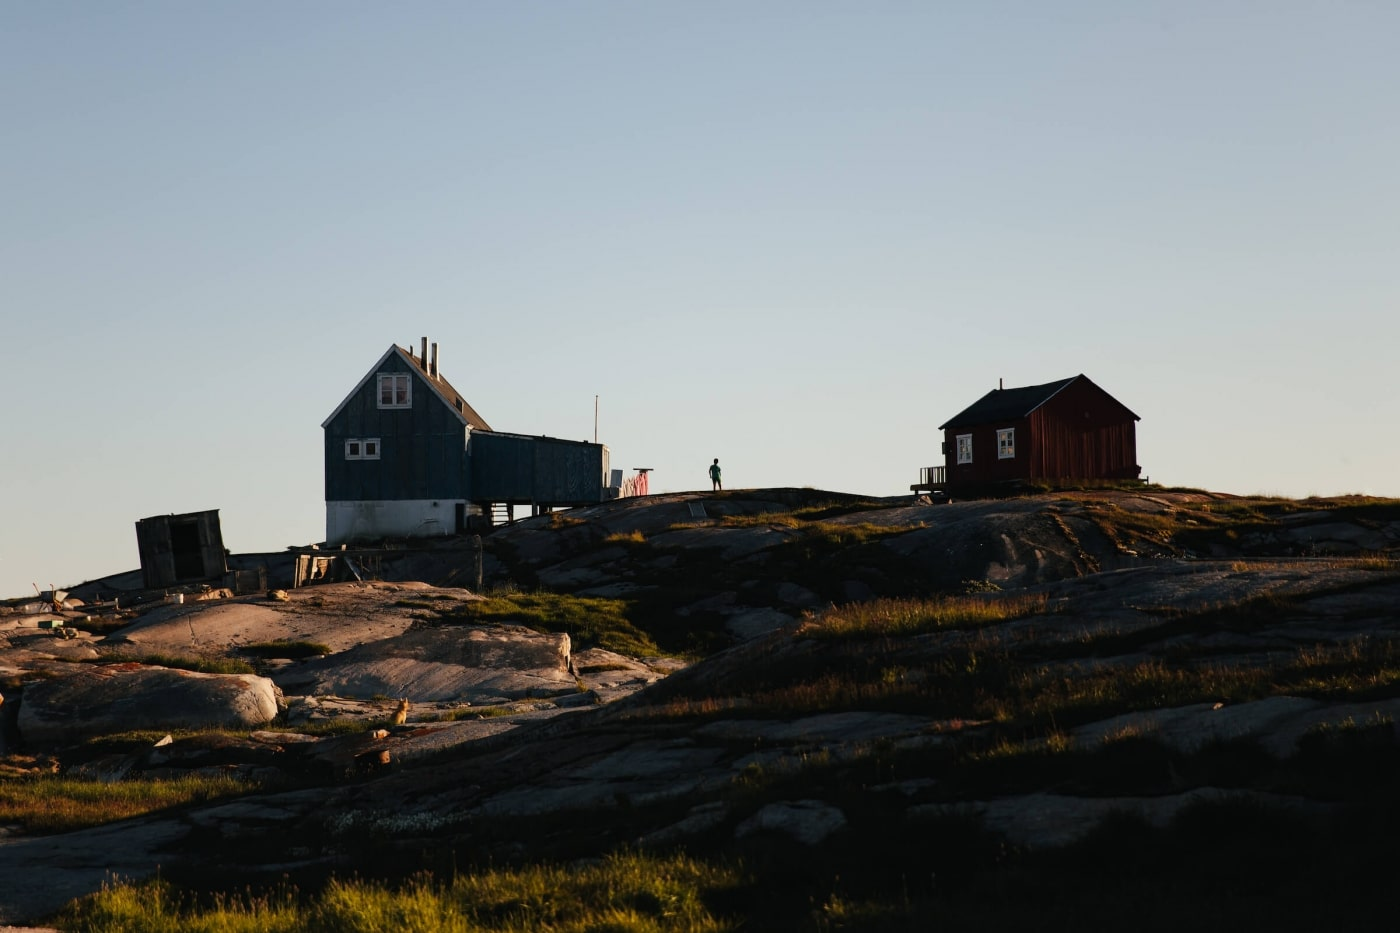 Boy stands between two homes in Oqaatsut magic hour. Photo by Jessie Brinkman Evans - Visit Greenland